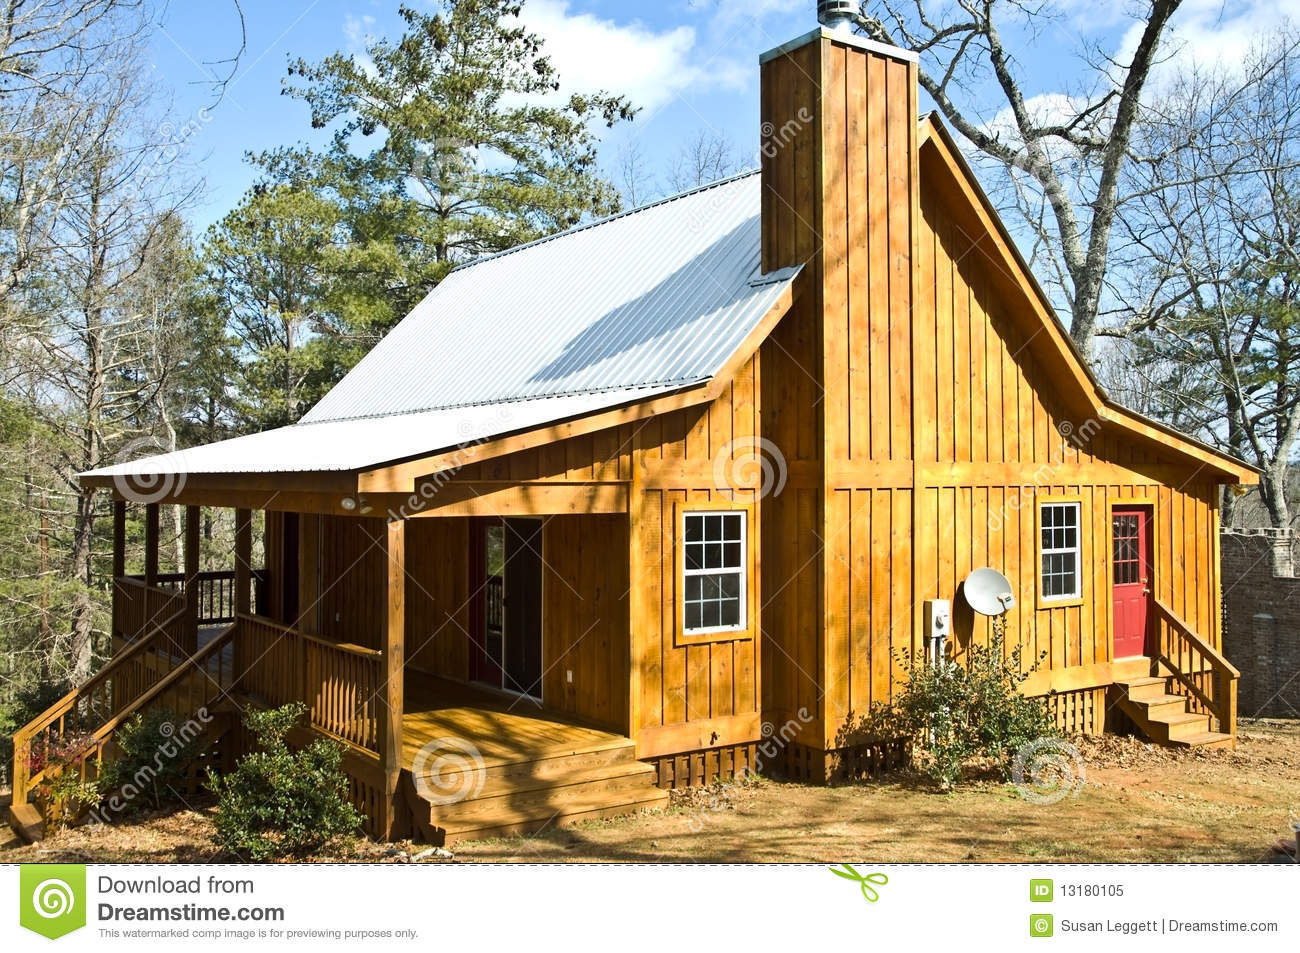 Wooden house with tin roof royalty free stock photo for House plans with tin roofs